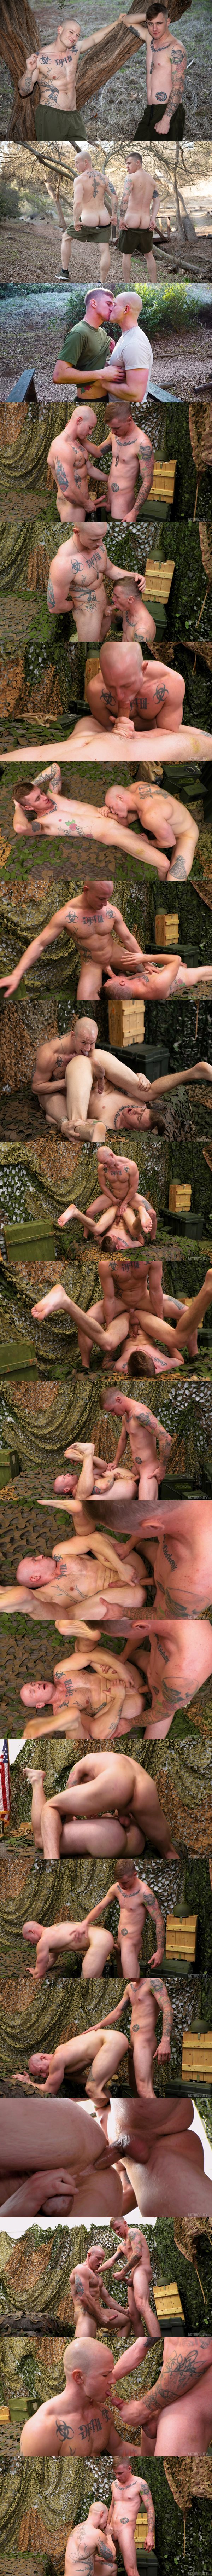 Activeduty - fit tattooed military stud Niko Carr and veteran gay porn star Ryan Jordan take turns barebacking each other before Ryan nuts on Niko's mouth and chest 02